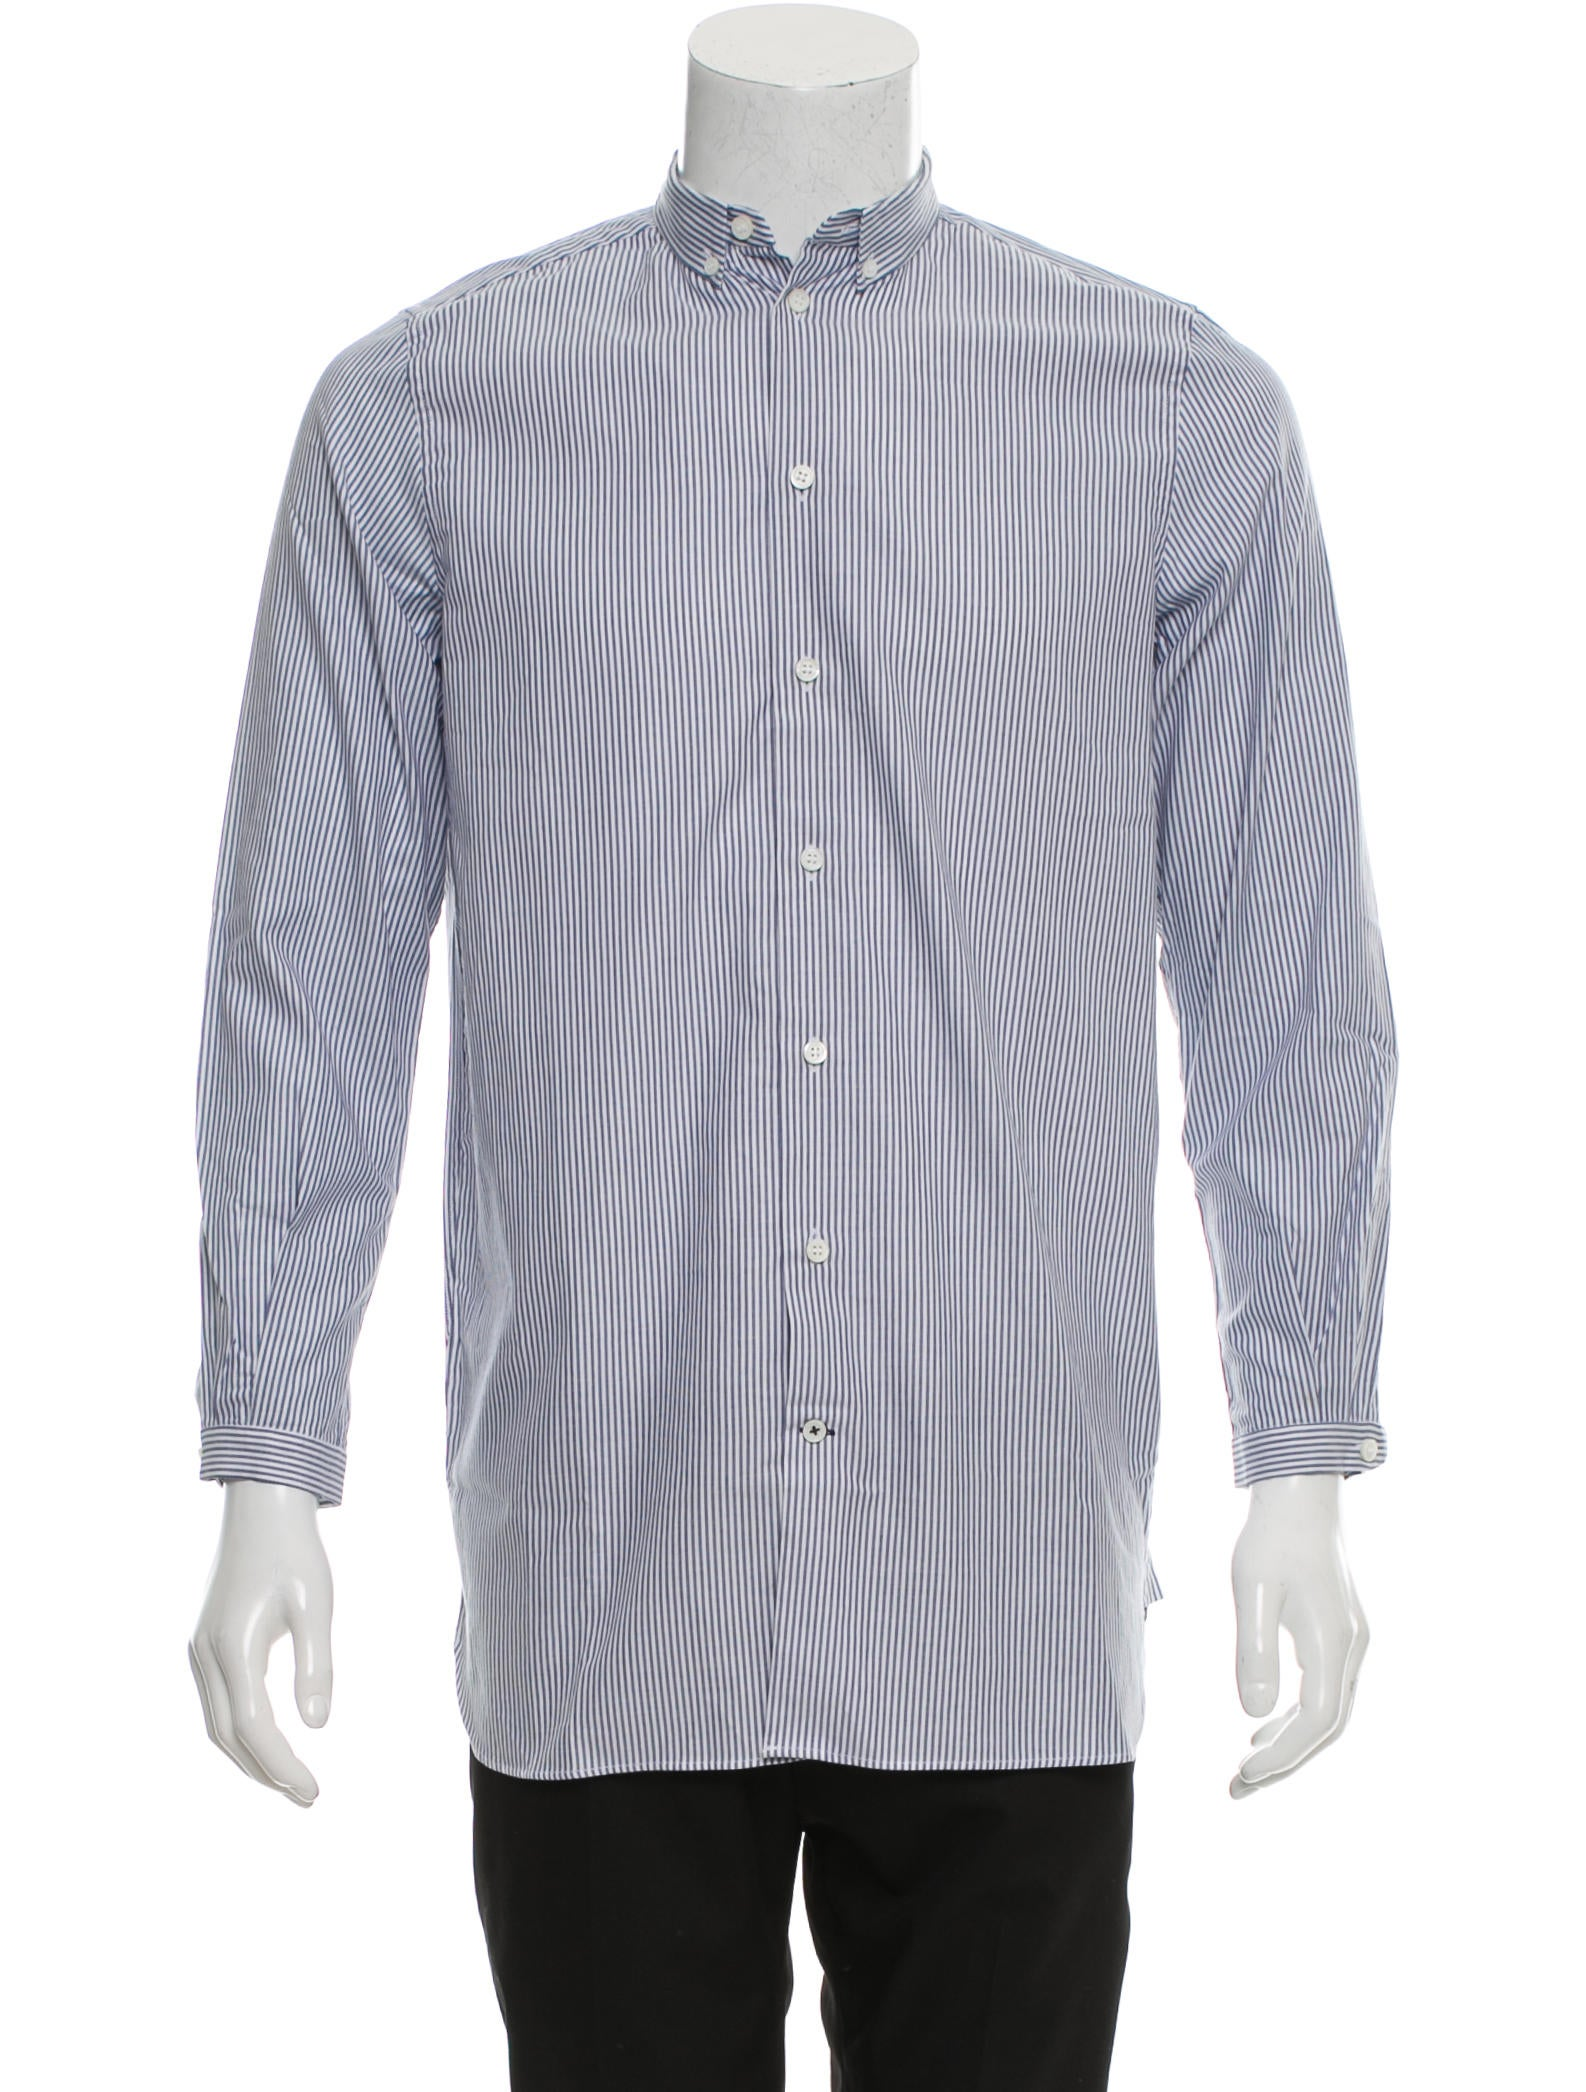 Carven striped button up shirt clothing cav26664 the for Striped button up shirt mens